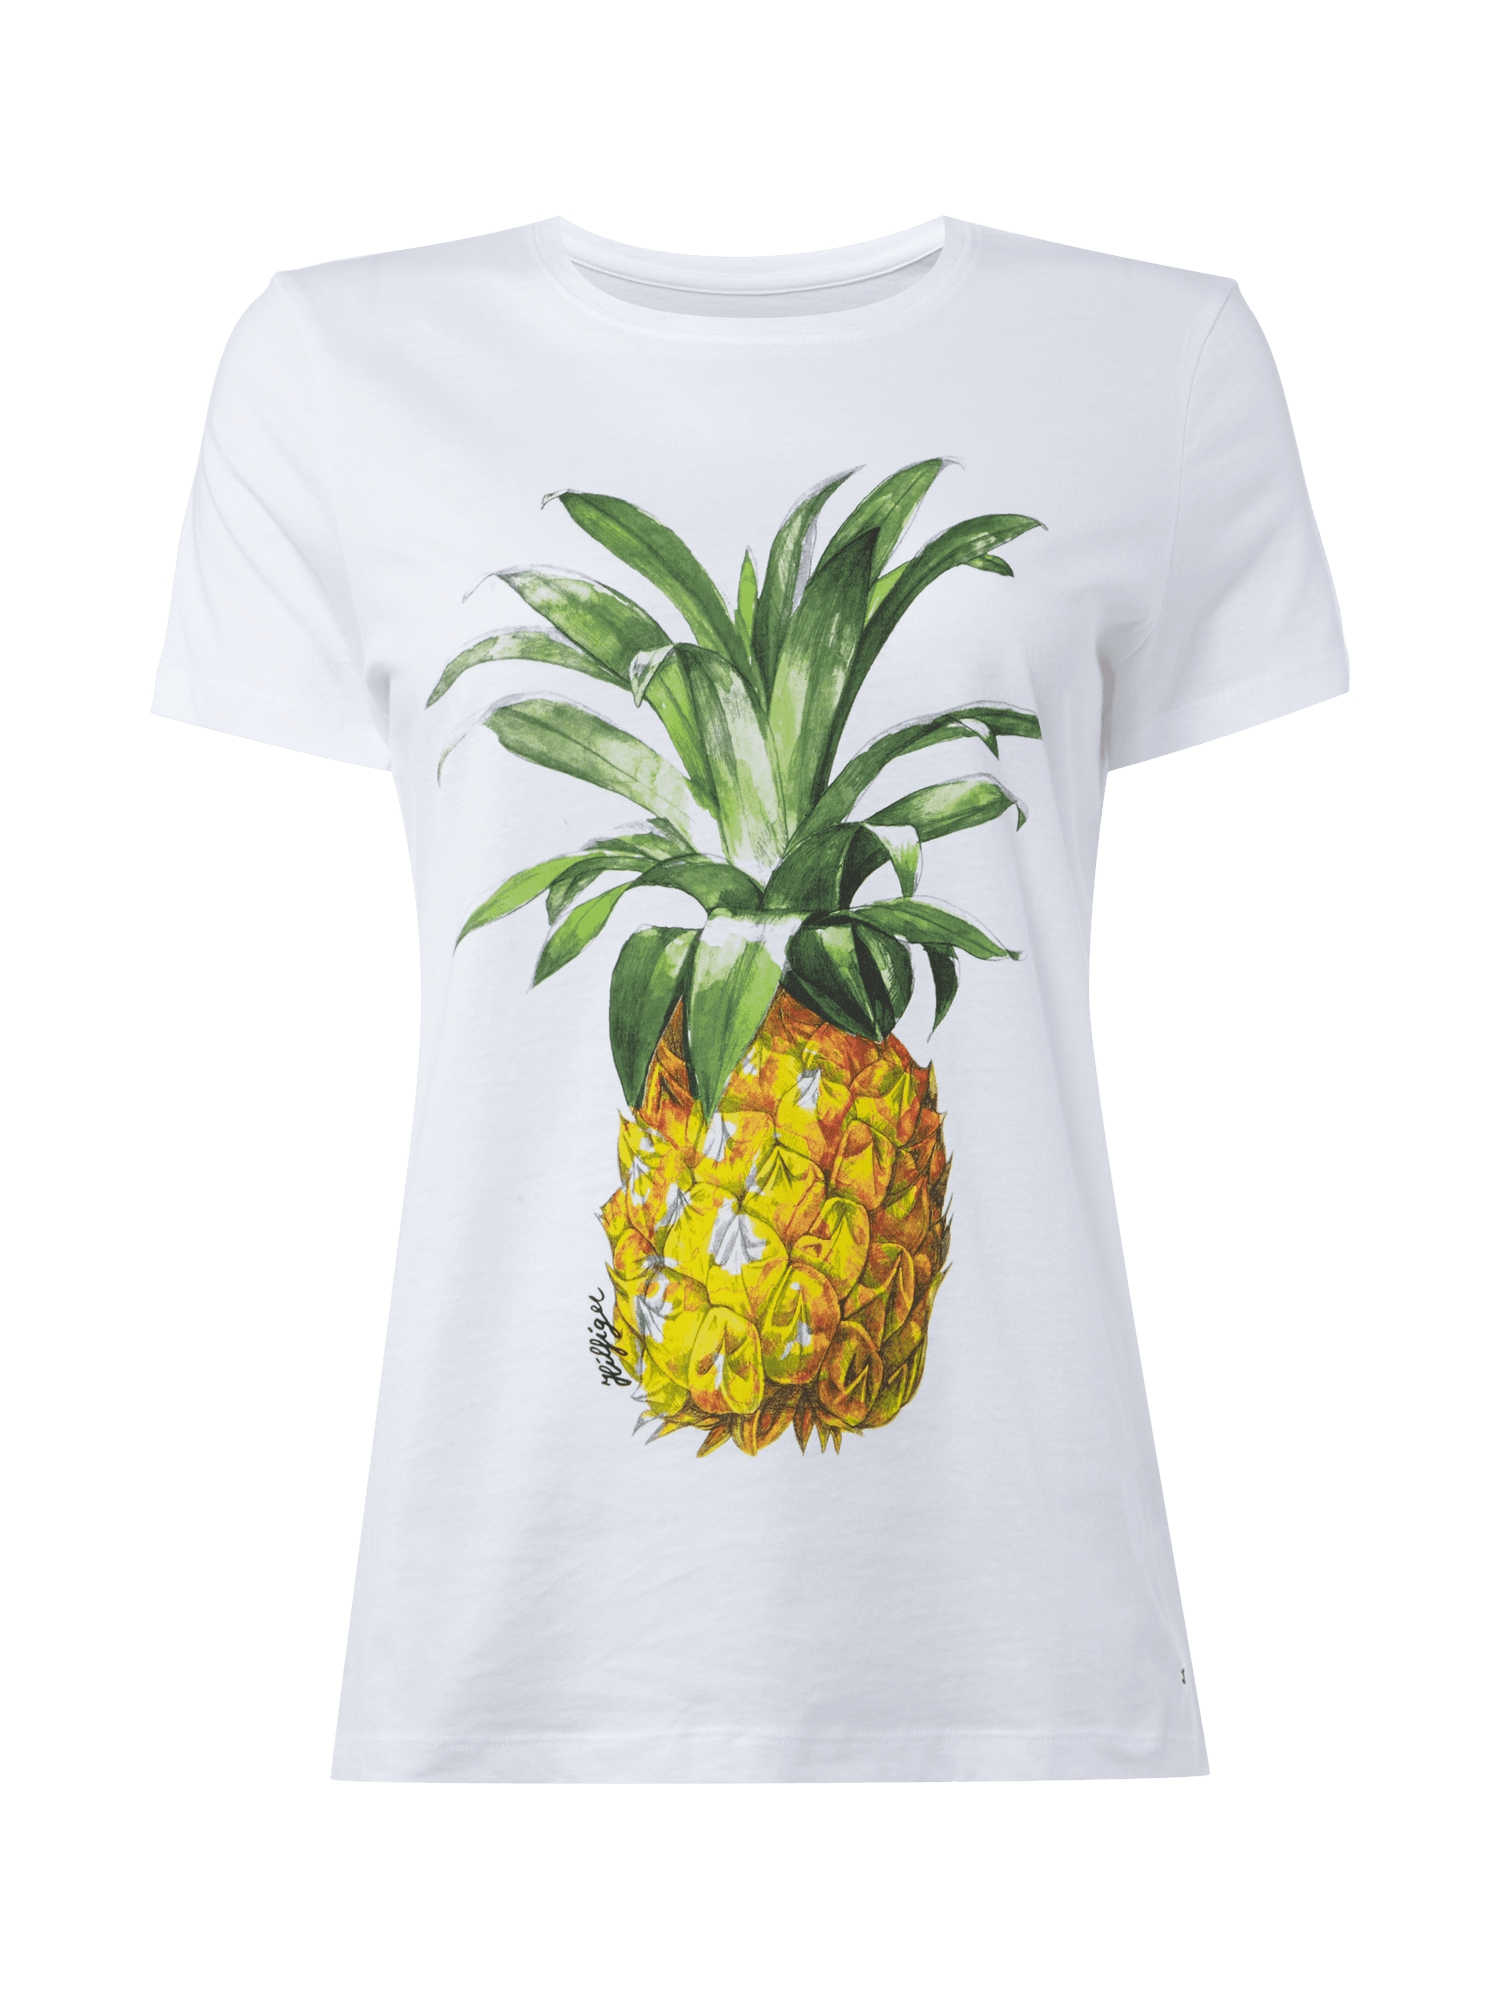 tommy hilfiger t shirt mit ananas print damen t shirt neu. Black Bedroom Furniture Sets. Home Design Ideas